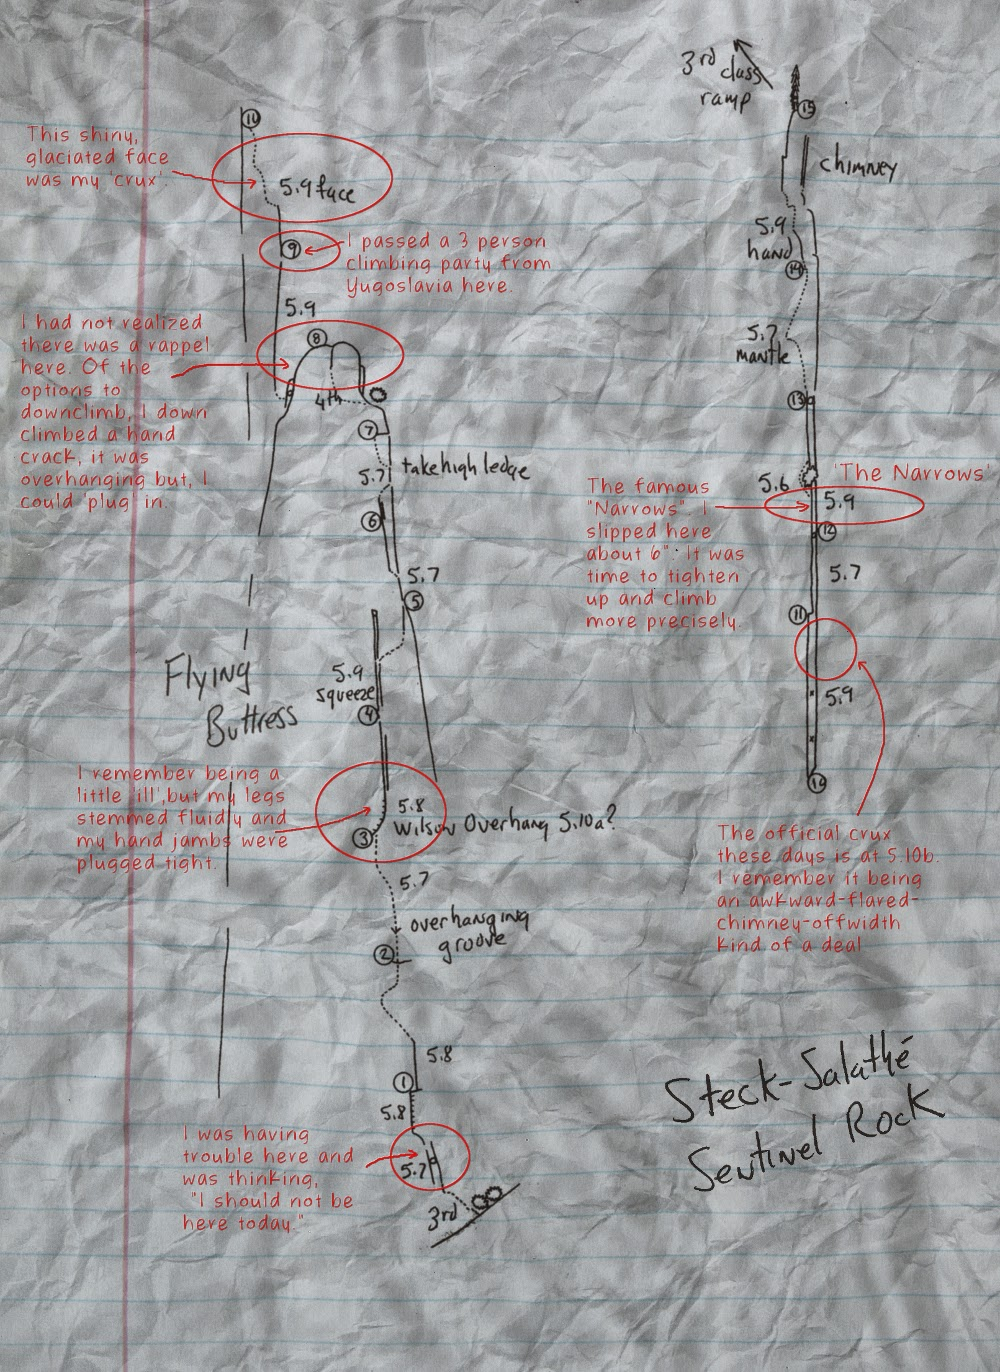 A rendition of my topo and notes (in black) that I took when I climbed the Steck-Salathe back in '87.